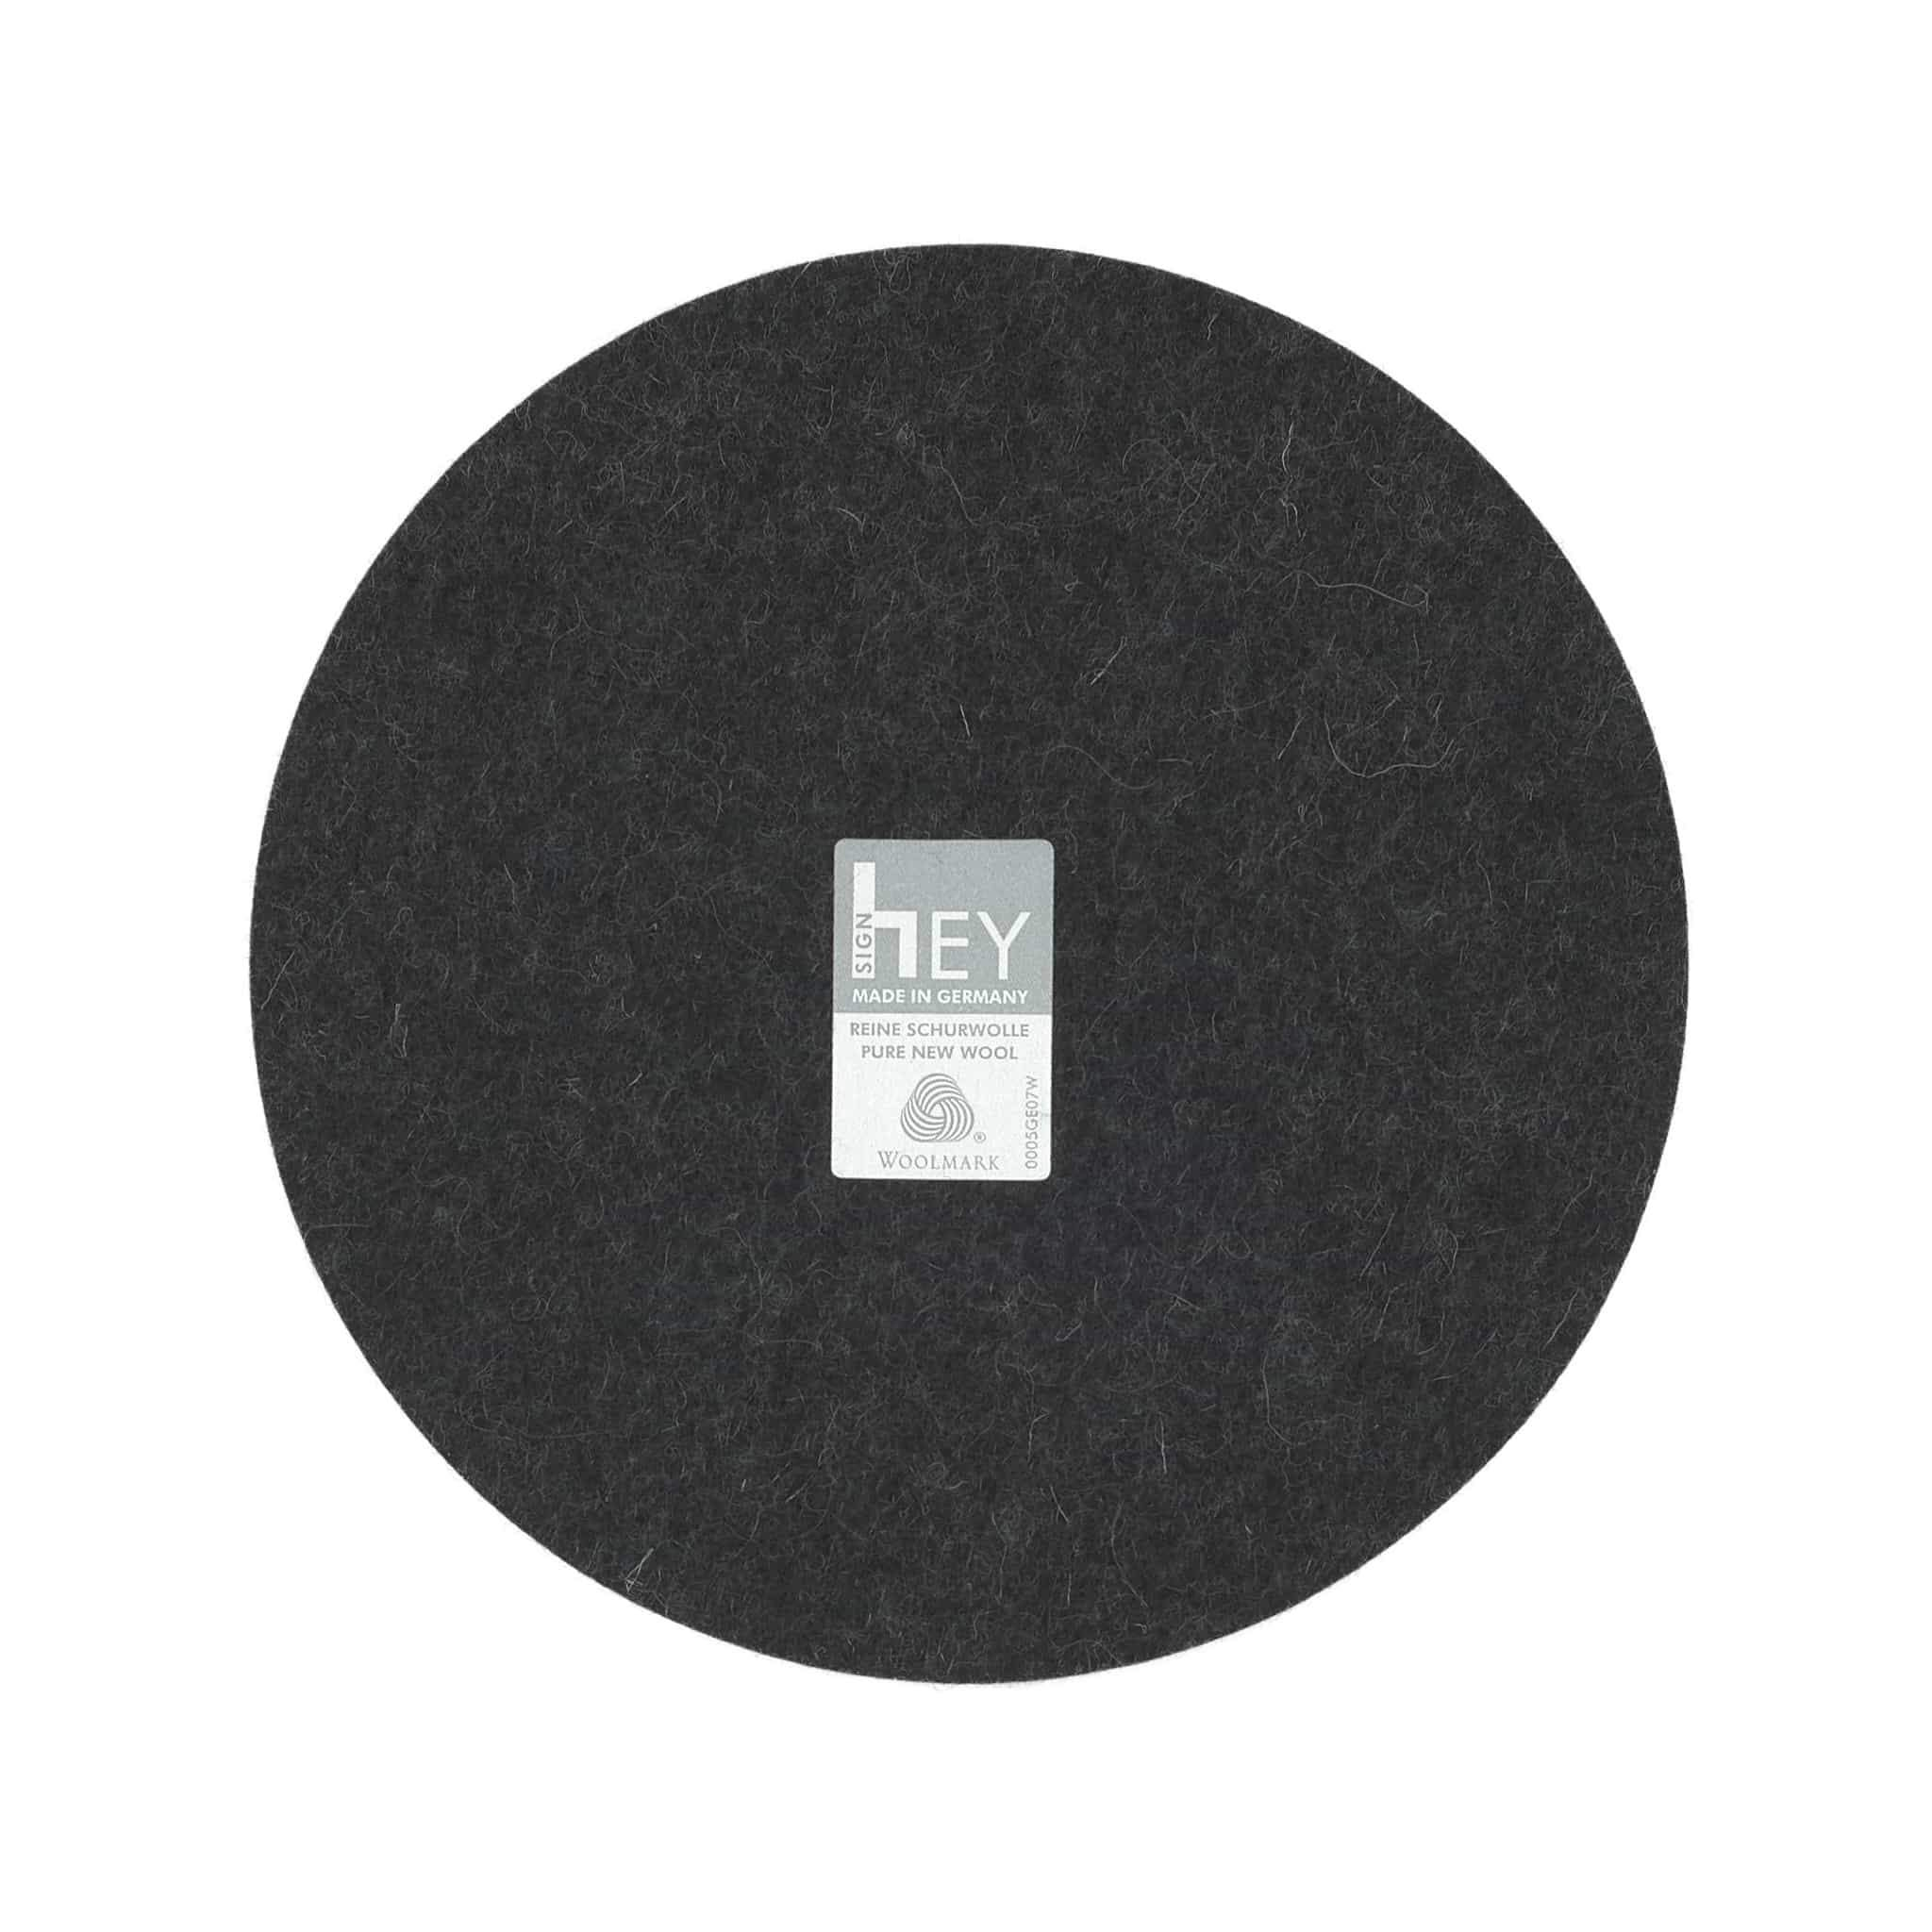 Round Felt Trivet in Graphite by Hey-Sign 300152008 looking at Back